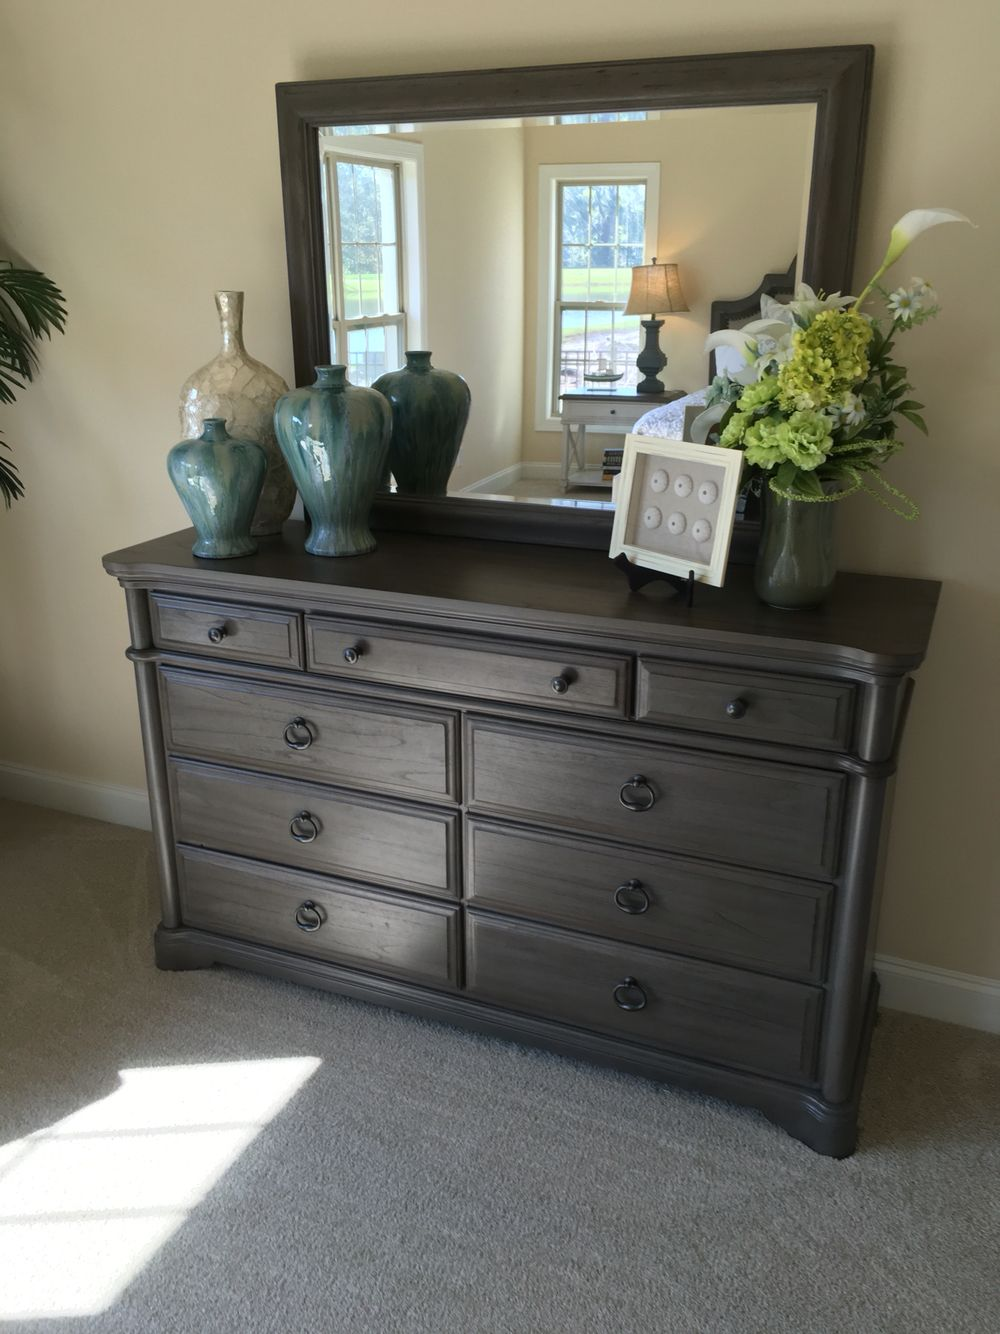 How To Stage A Dresser Dresser Top Decor Dresser Decor Bedroom